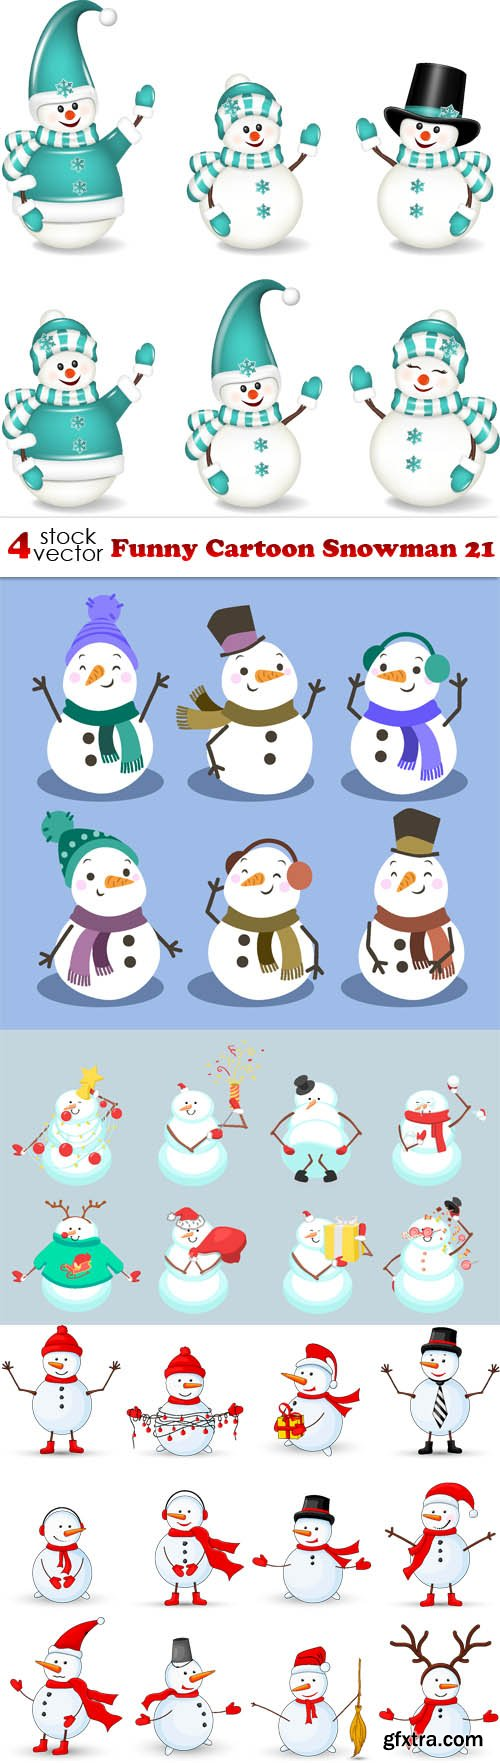 Vectors - Funny Cartoon Snowman 21